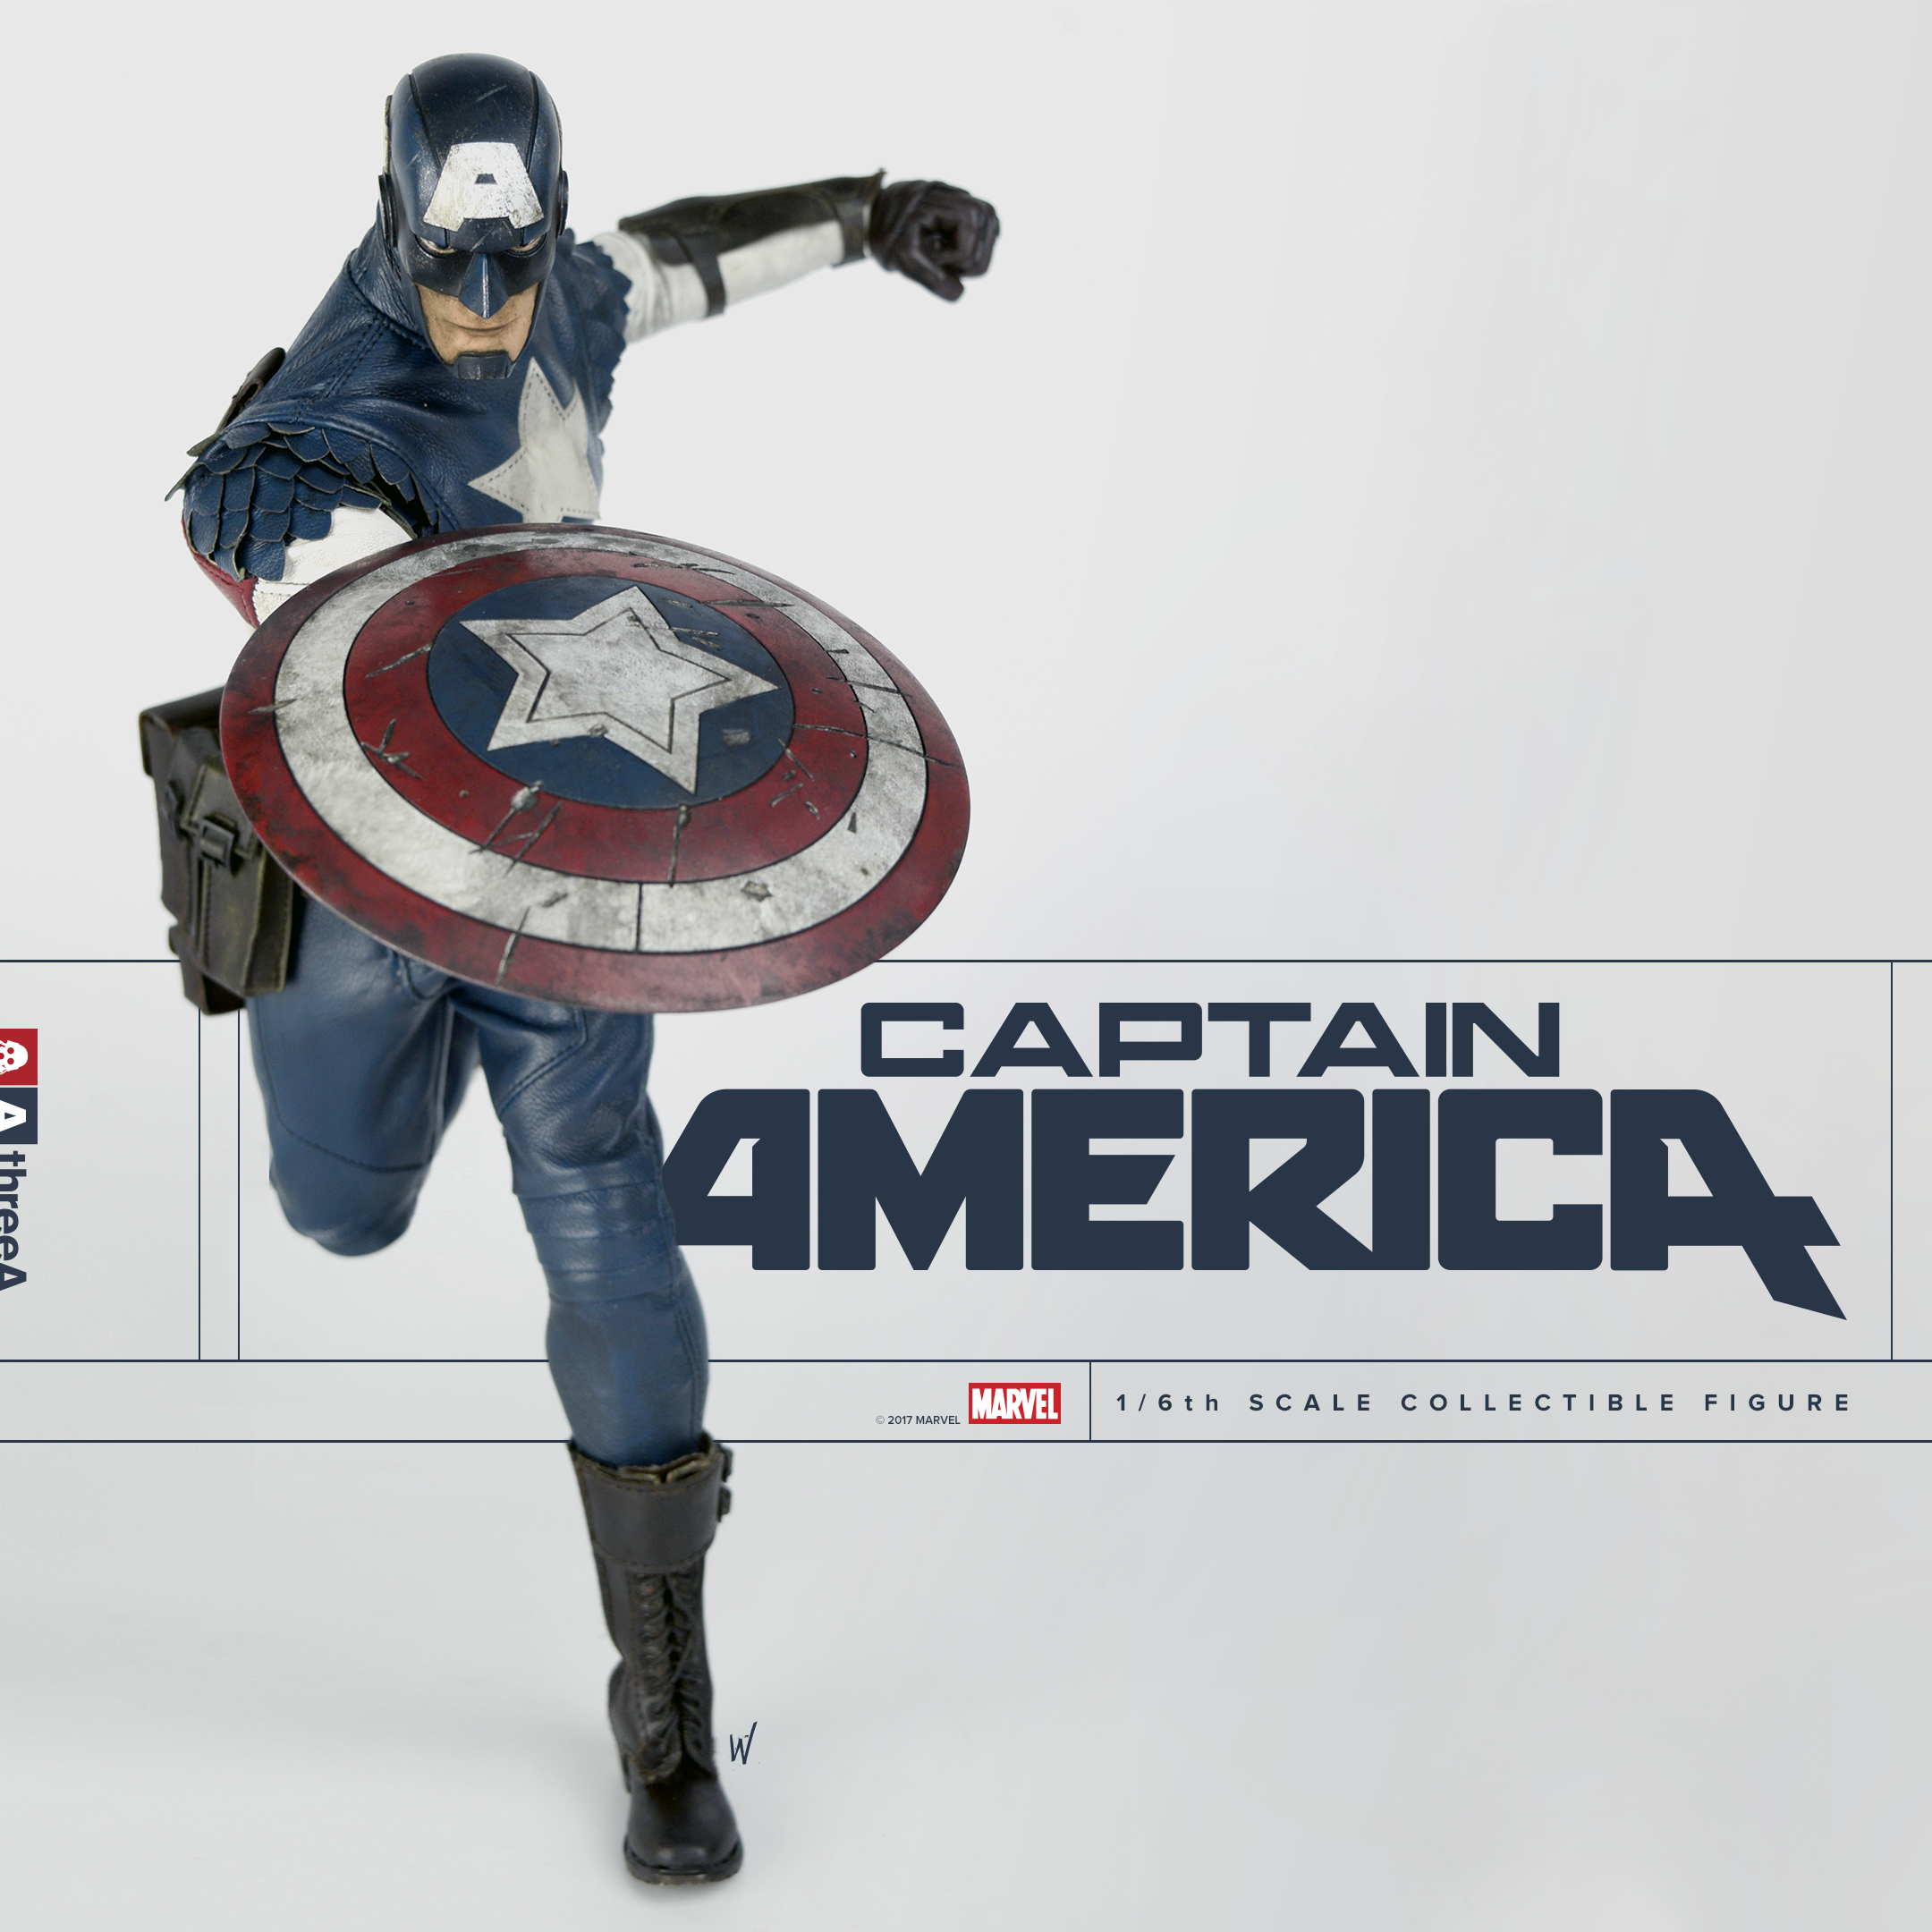 3A_Marvel_CaptainAmerica_Square_Ad_004b.png